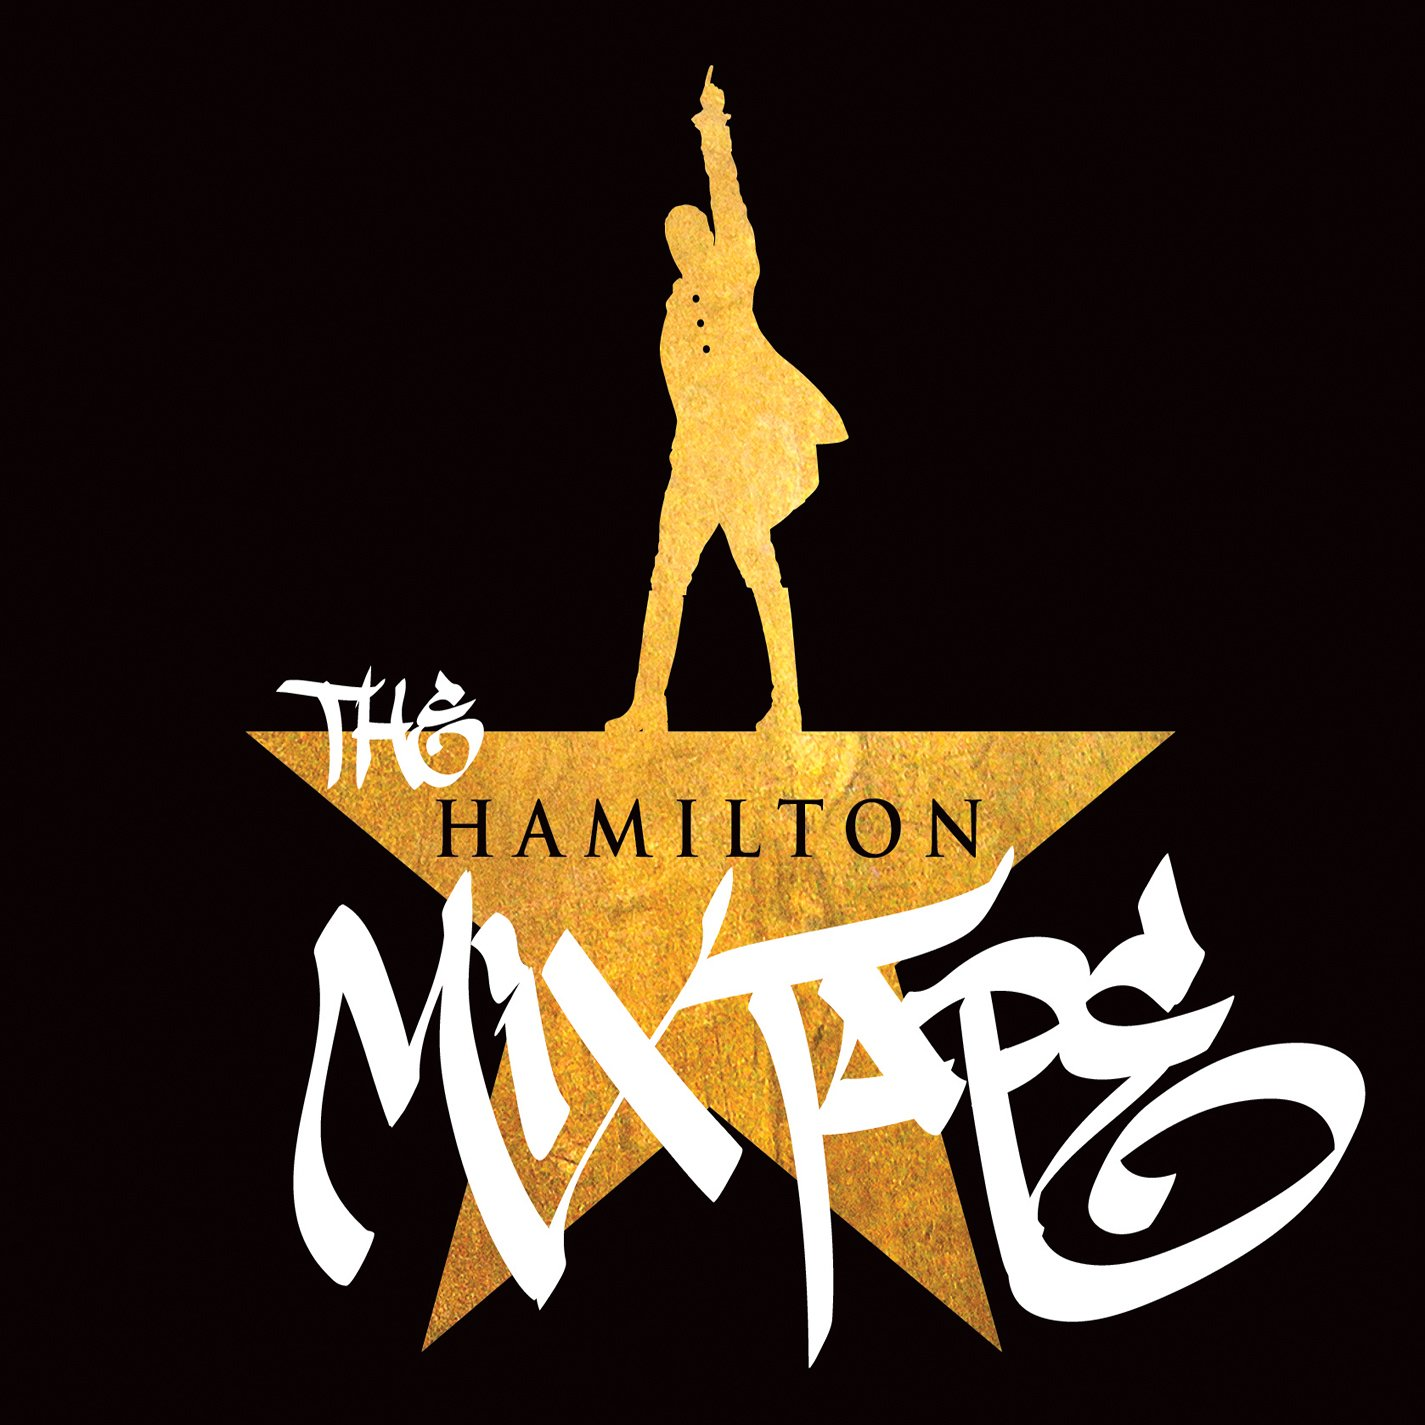 CD : Soundtrack - The Hamilton Mixtape (Clean Version)